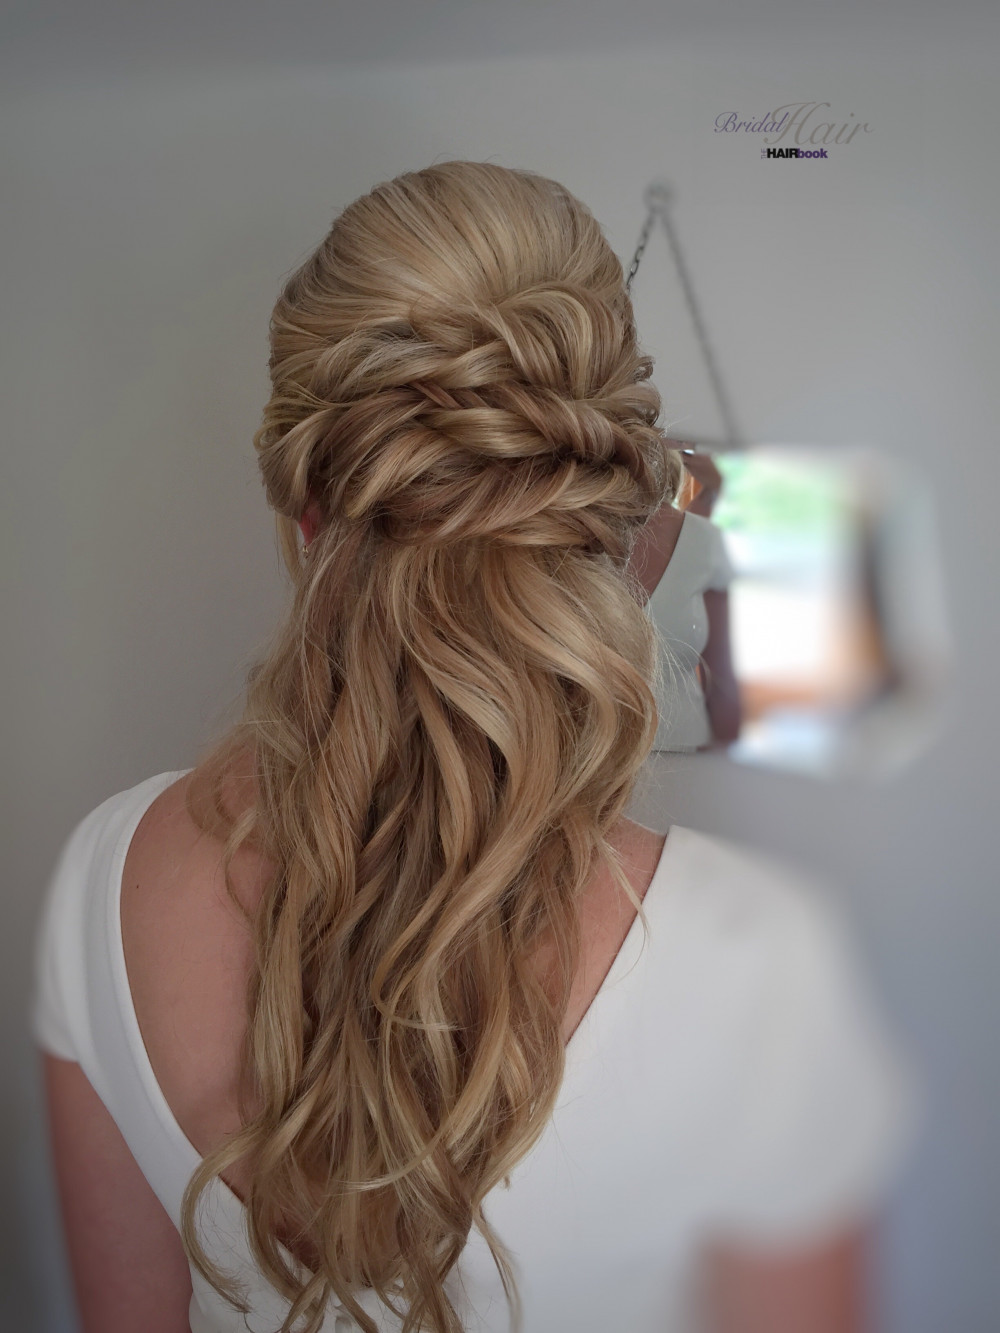 - Make Me Bridal Artist: The Hairbook. #bohemian #classic #vintage #glamorous #boho #halfuphair